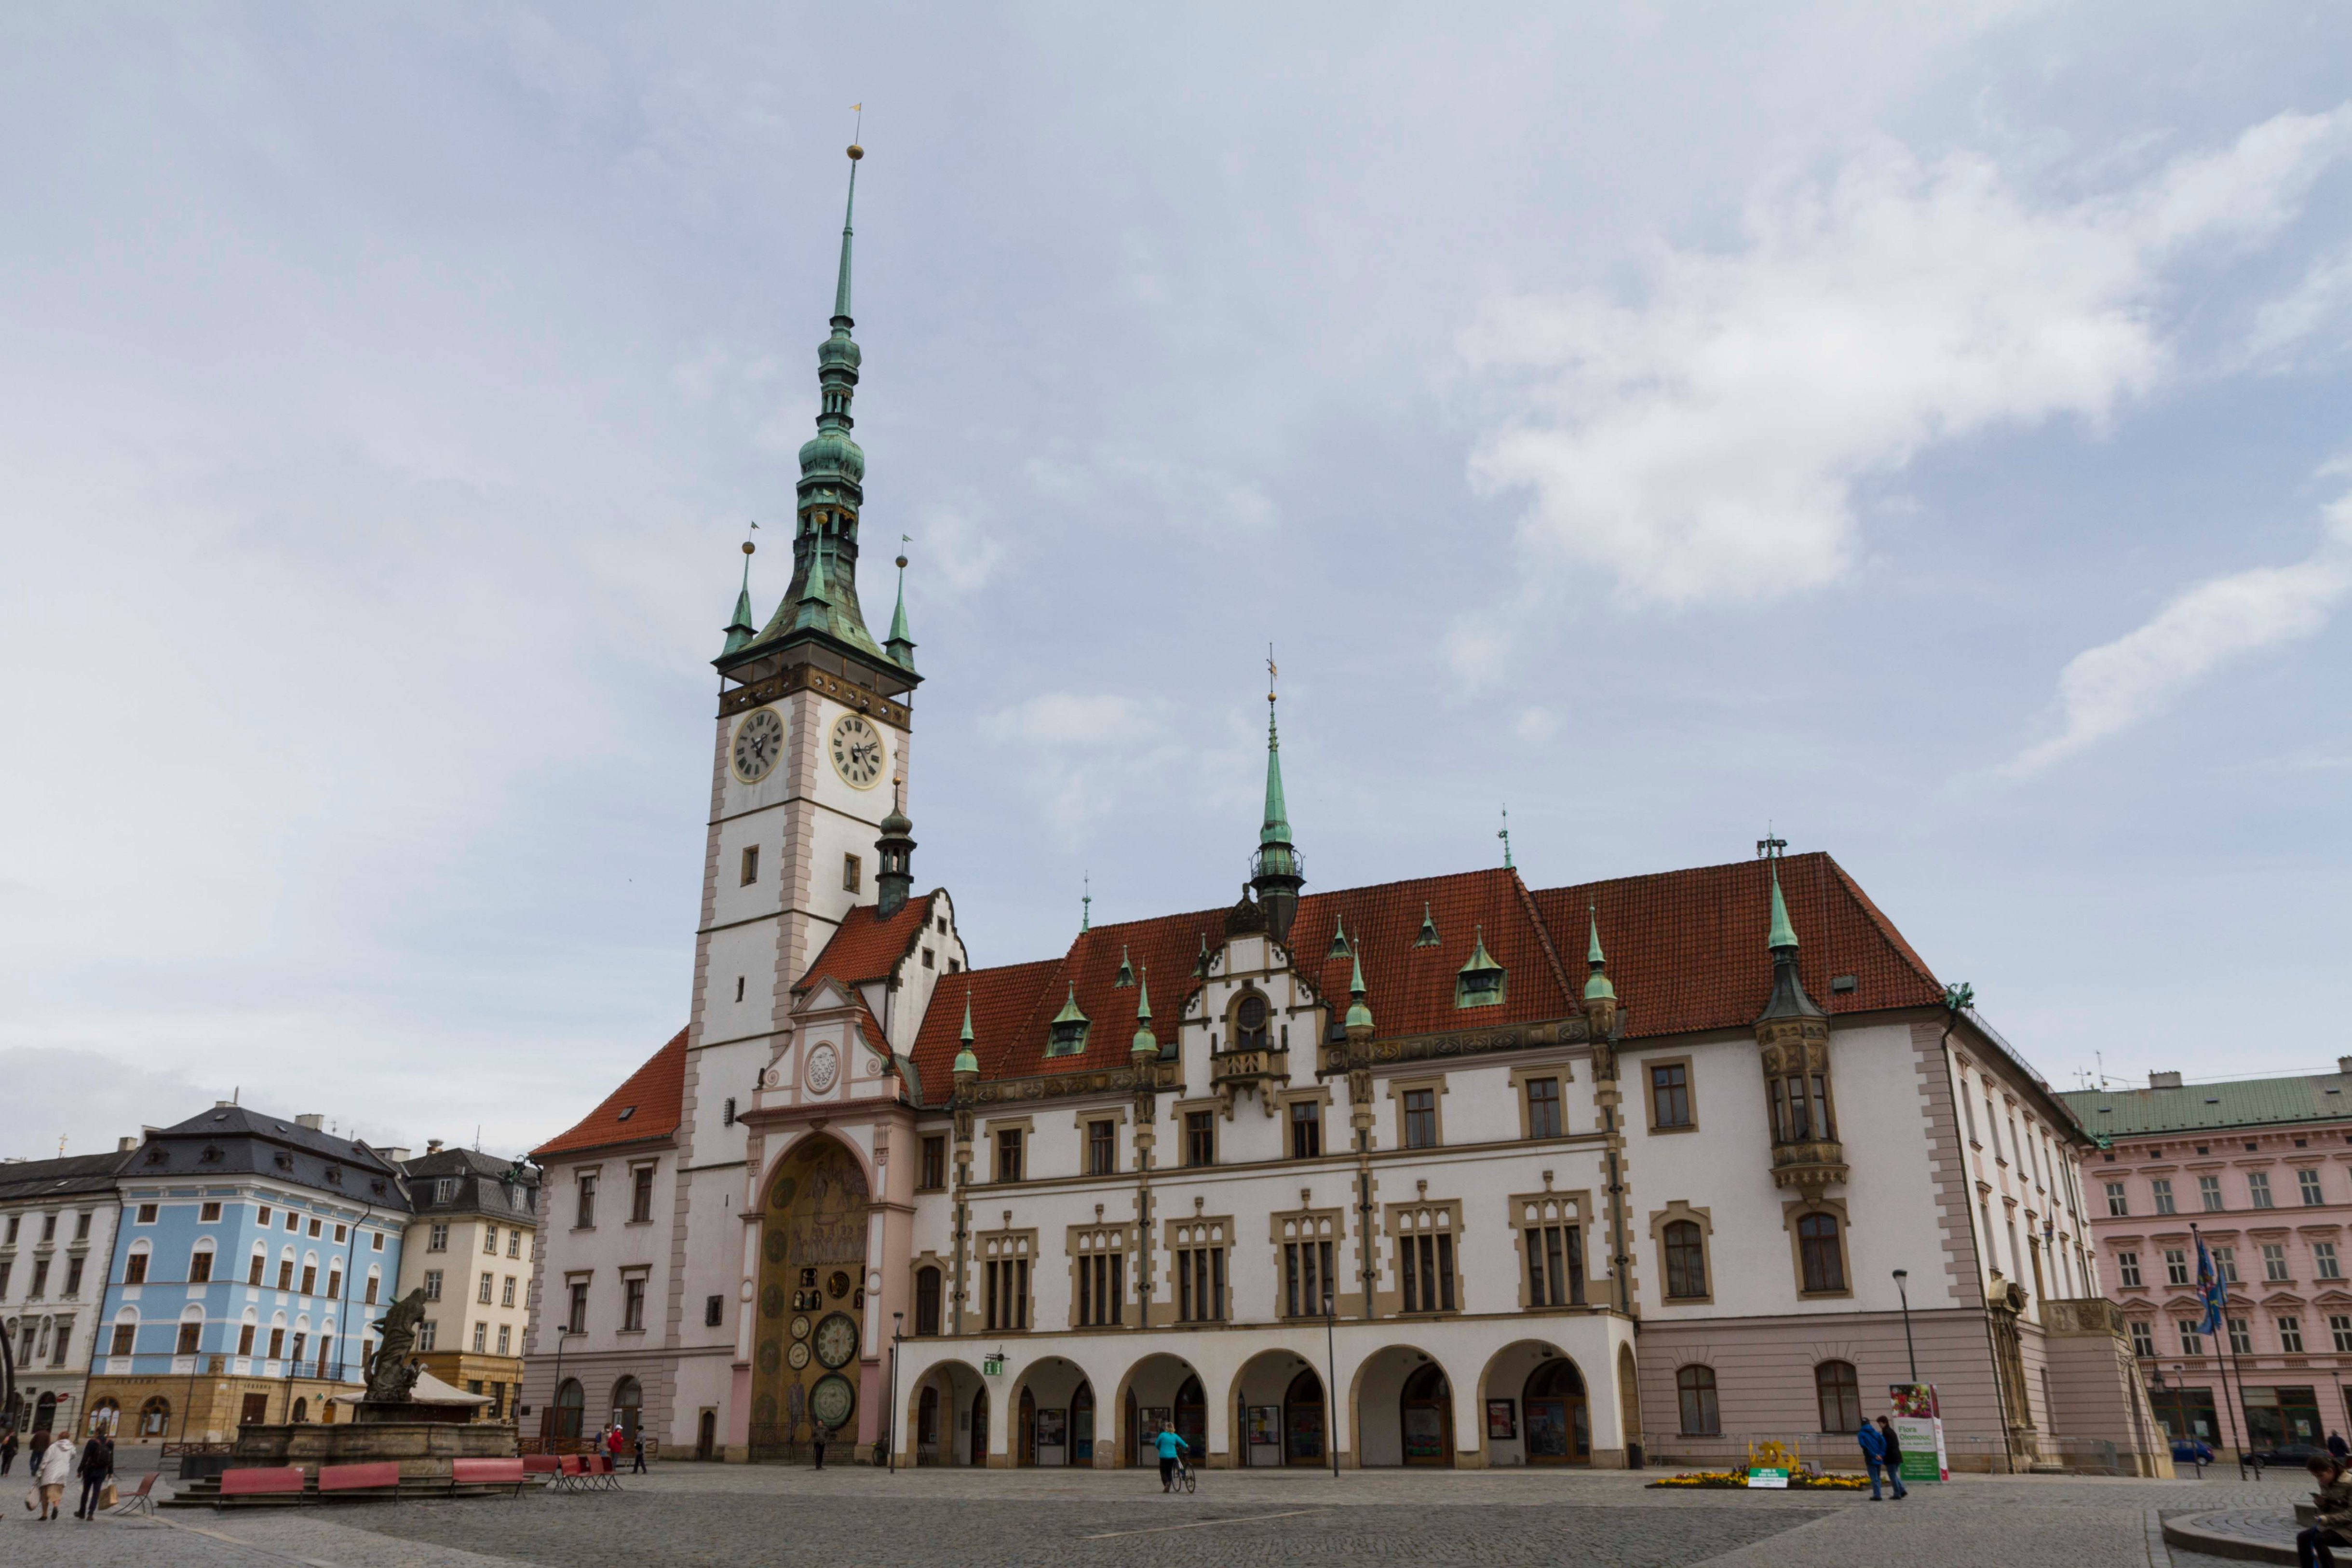 Olomouc City Hall, with Astronomical Clock on the left.